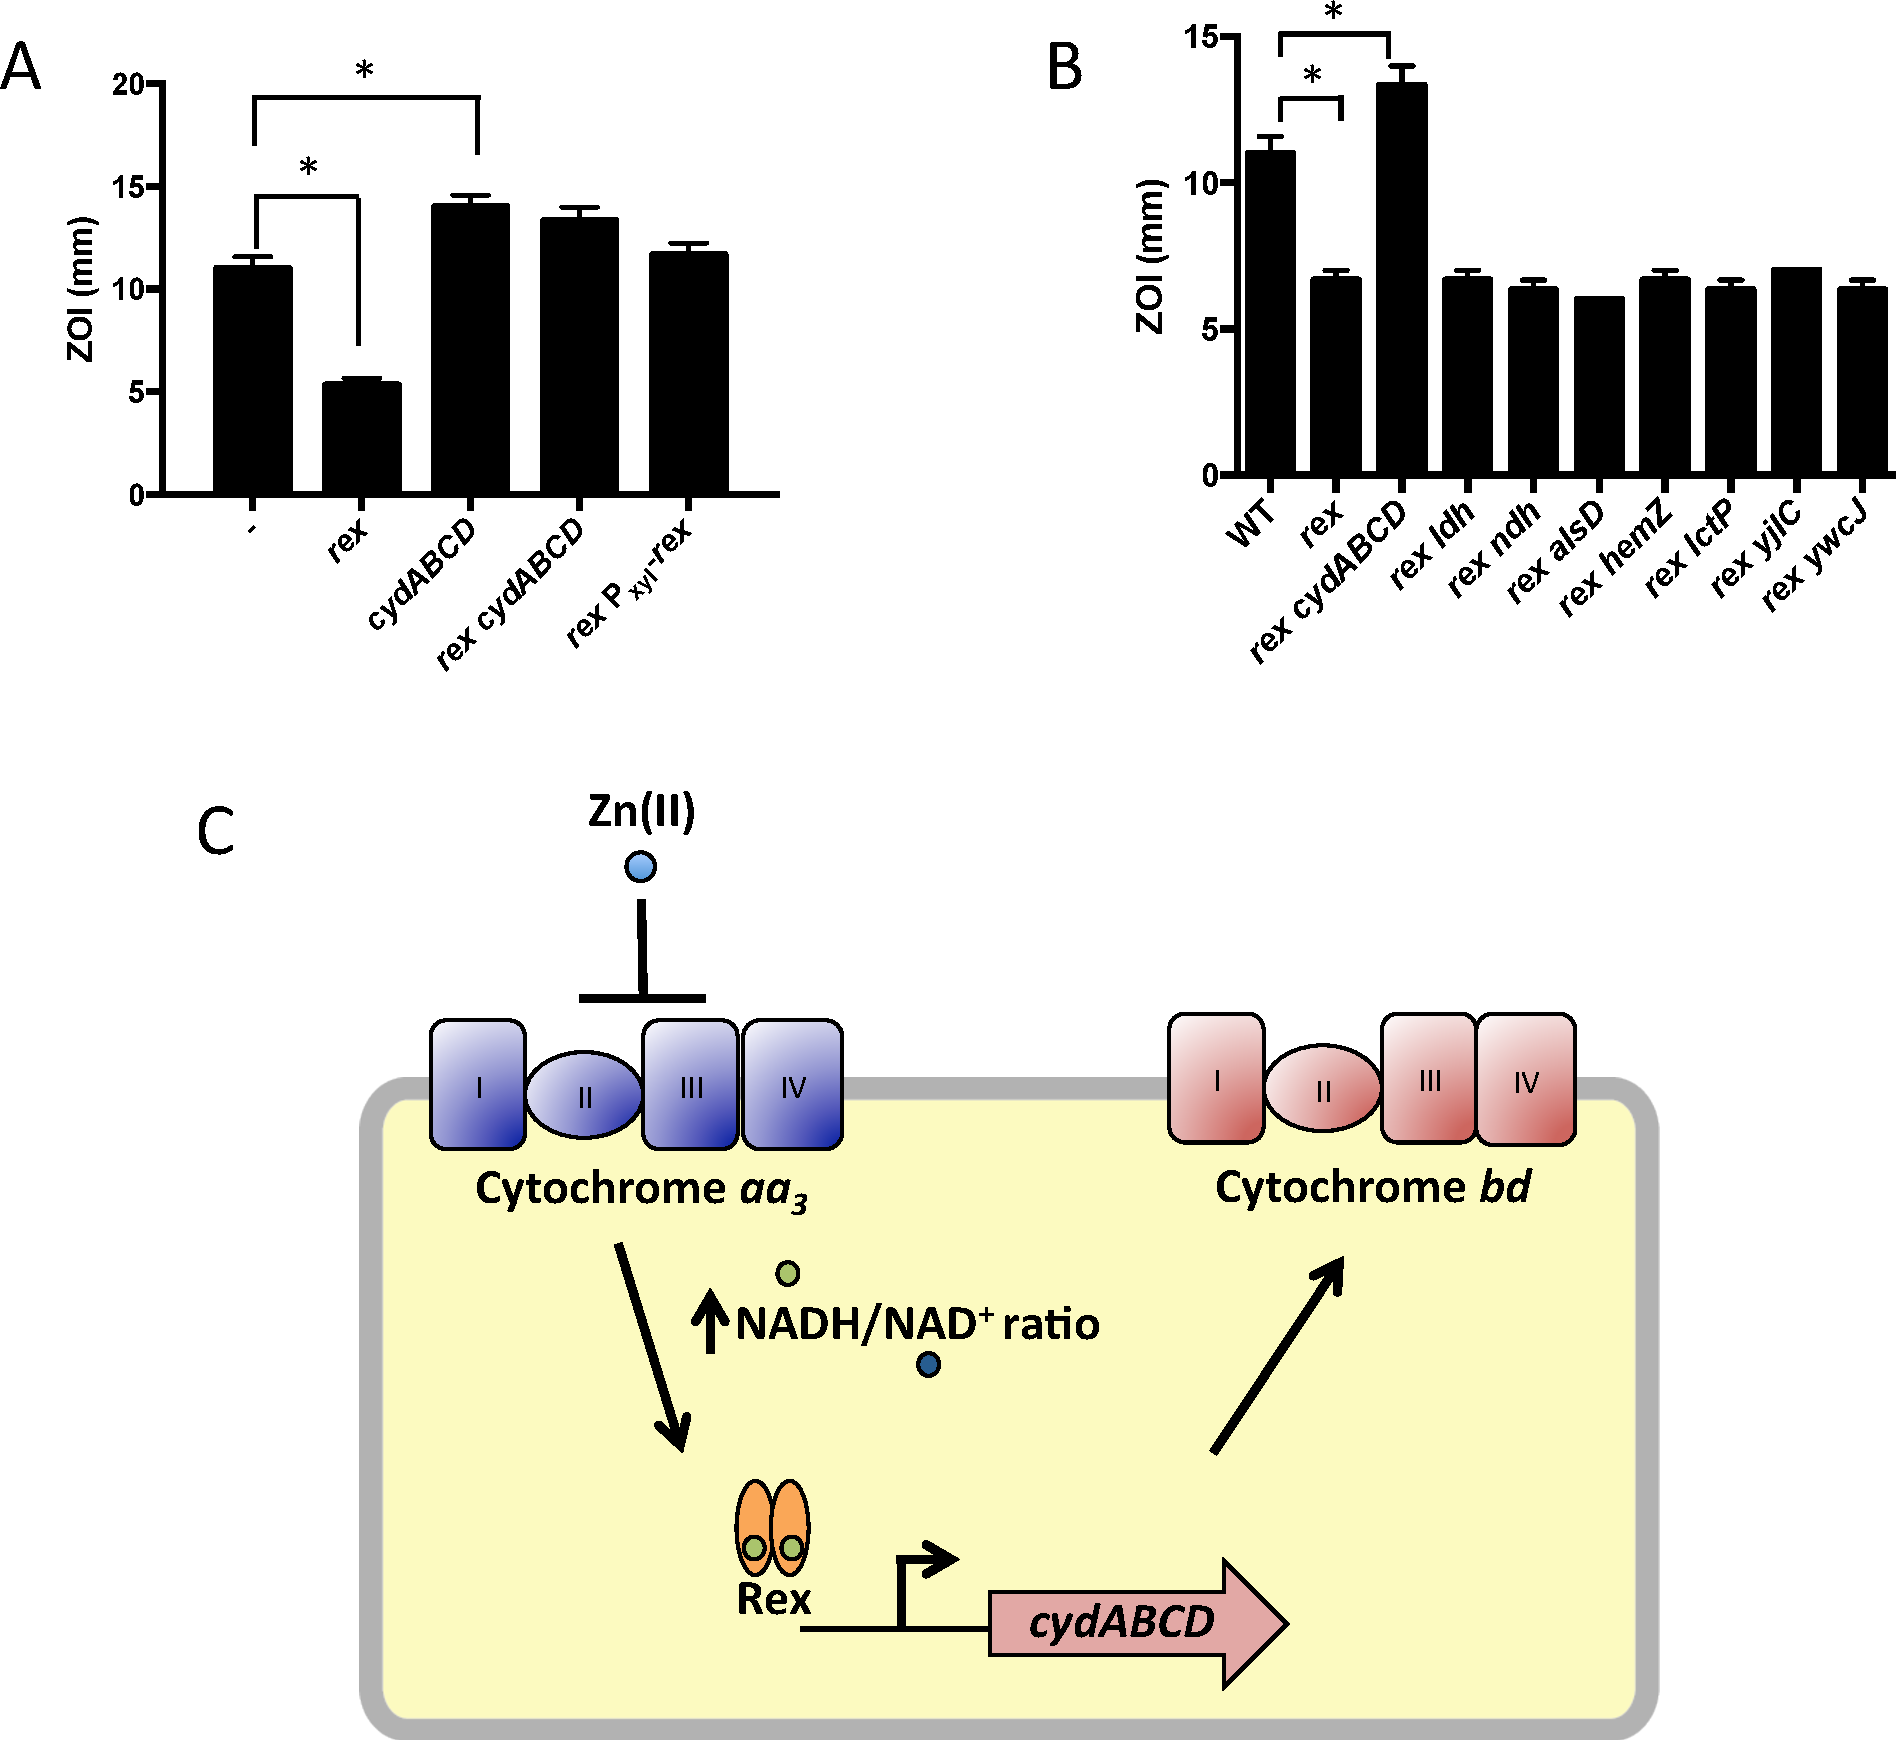 Derepression of the alternative cytochrome <i>bd</i> oxidase contributes to Zn(II) resistance.